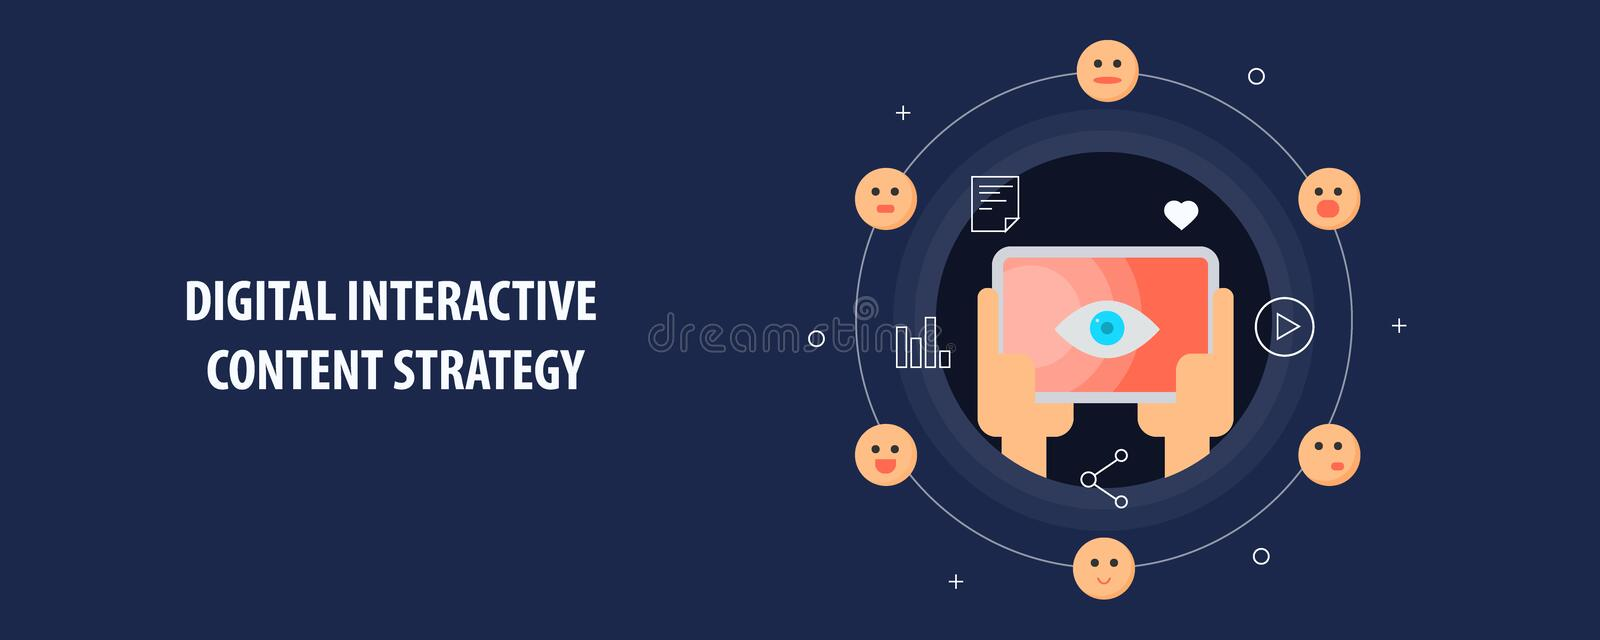 Digital interactive content marketing strategy - user engaged with interactive media. Flat design vector banner. stock illustration